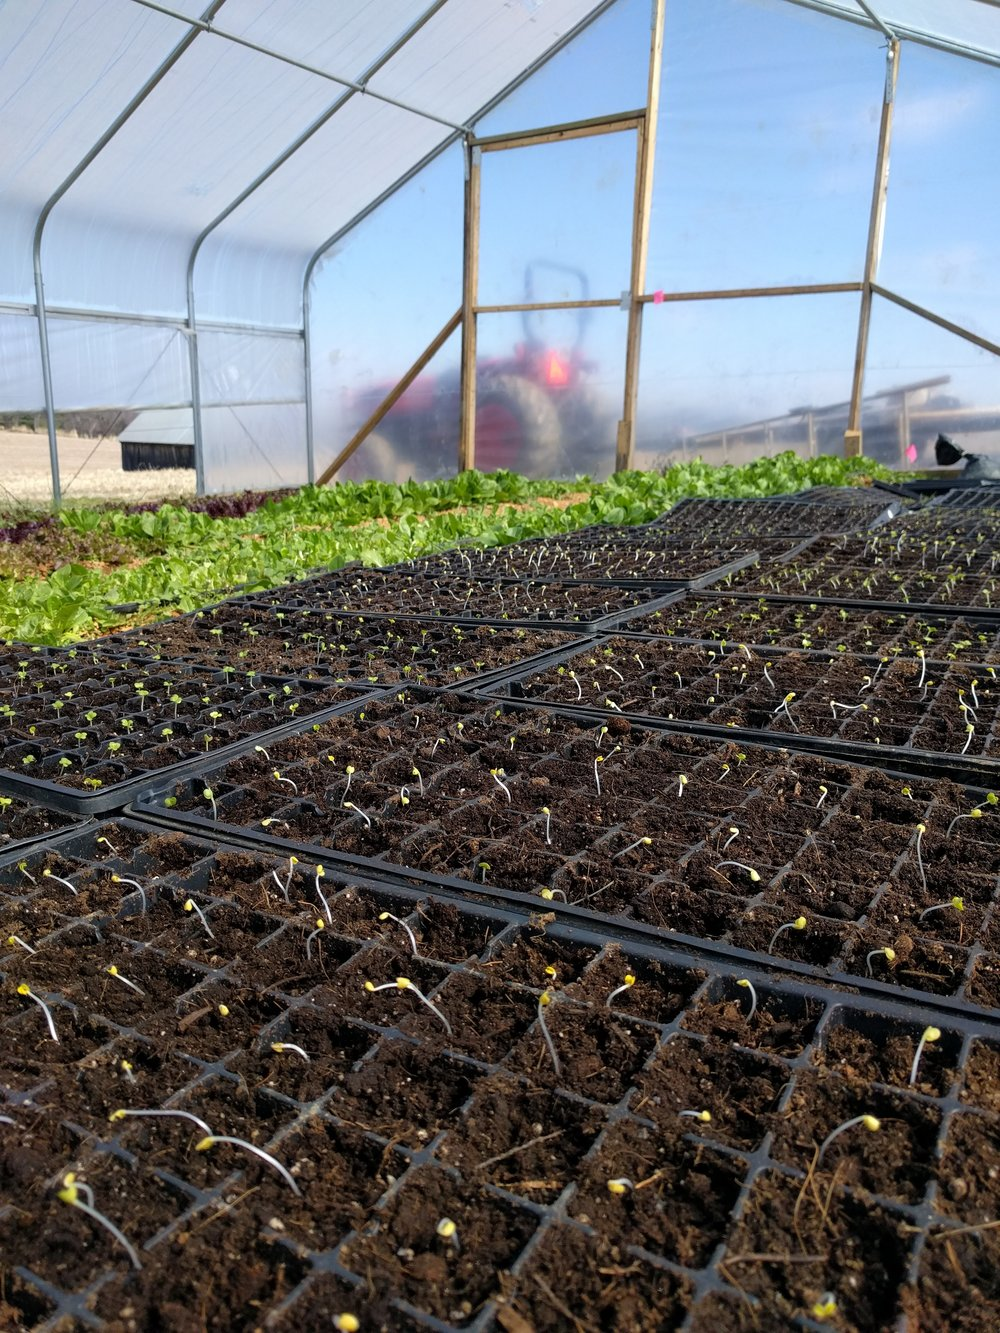 One of the the most exciting signs of spring, cabbage seedlings, fresh germinated in the high tunnel.